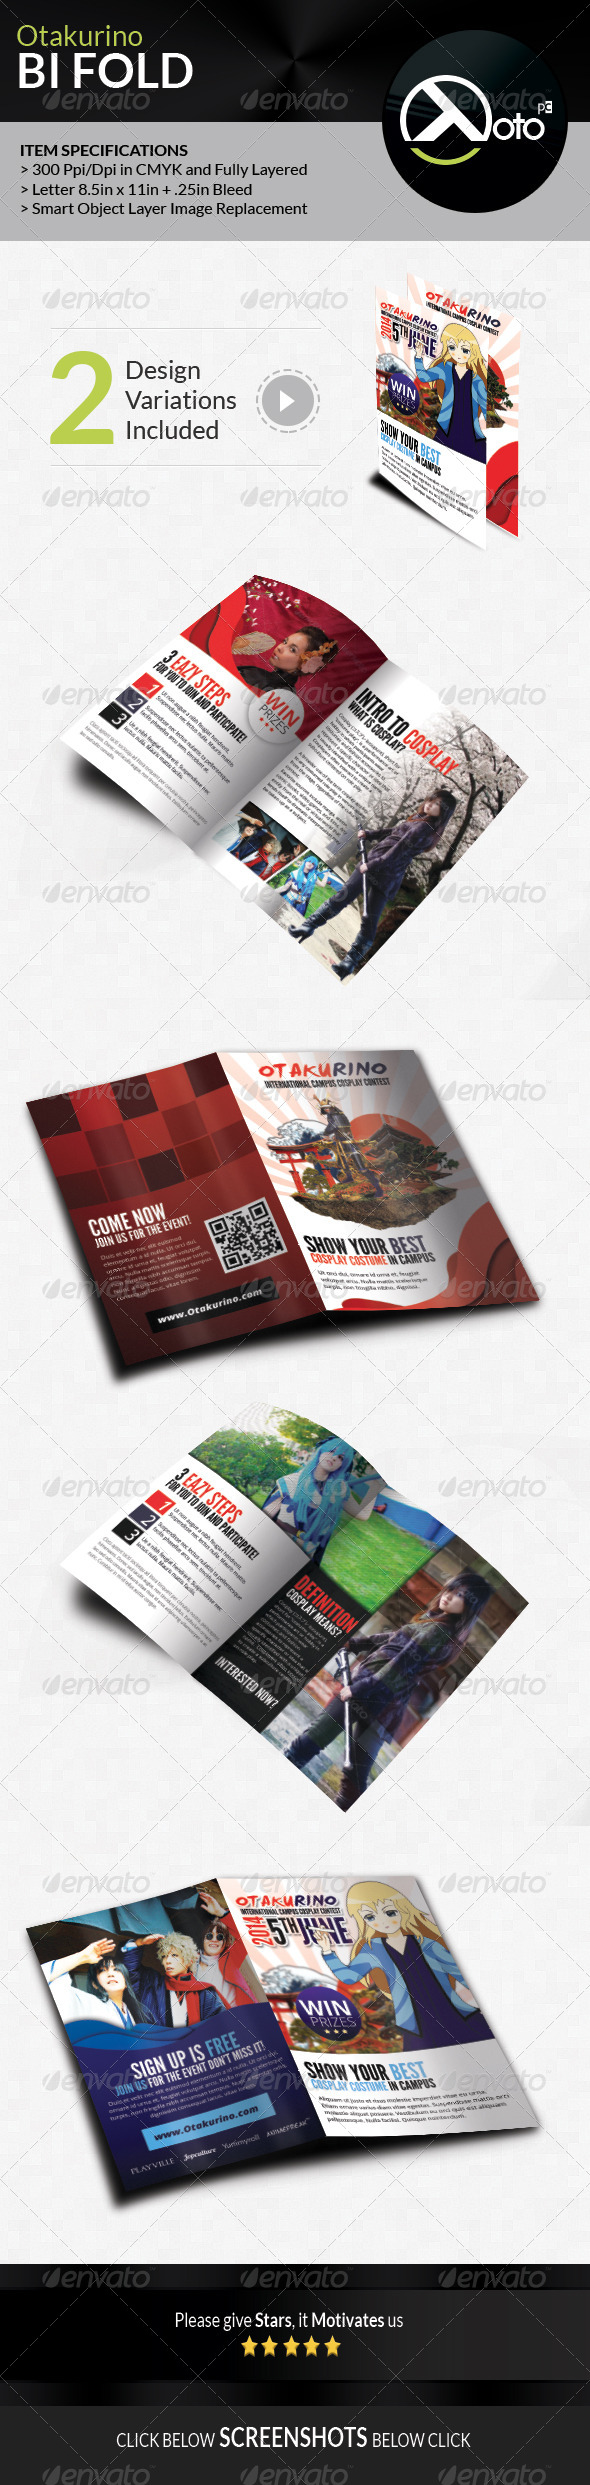 GraphicRiver Otakurino Internation Cosplay Contest Bifold 7755006